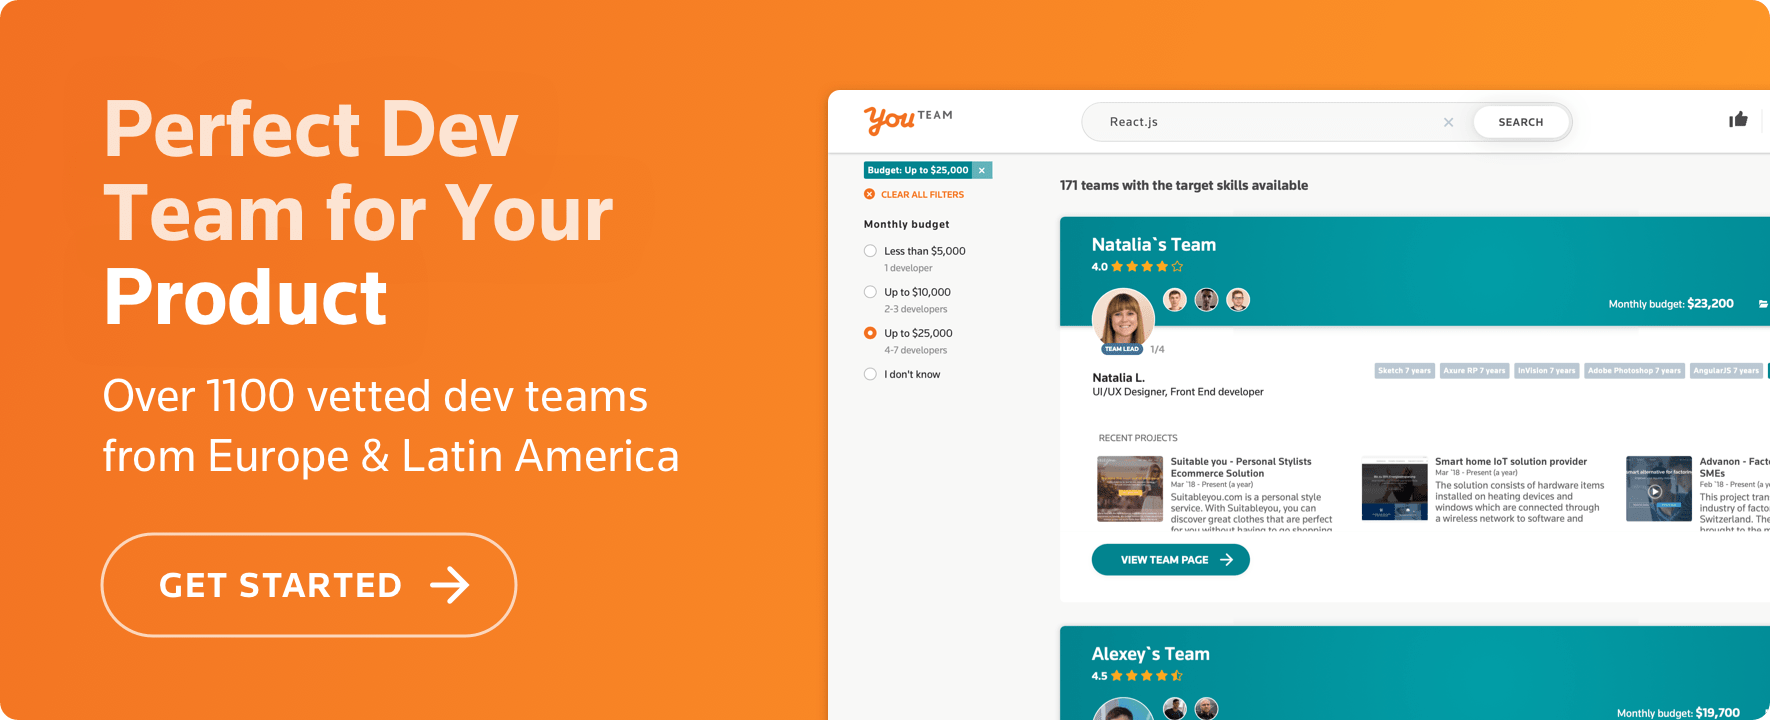 Over 1100 vetted dev teams from Europe & Latin America on YouTeam